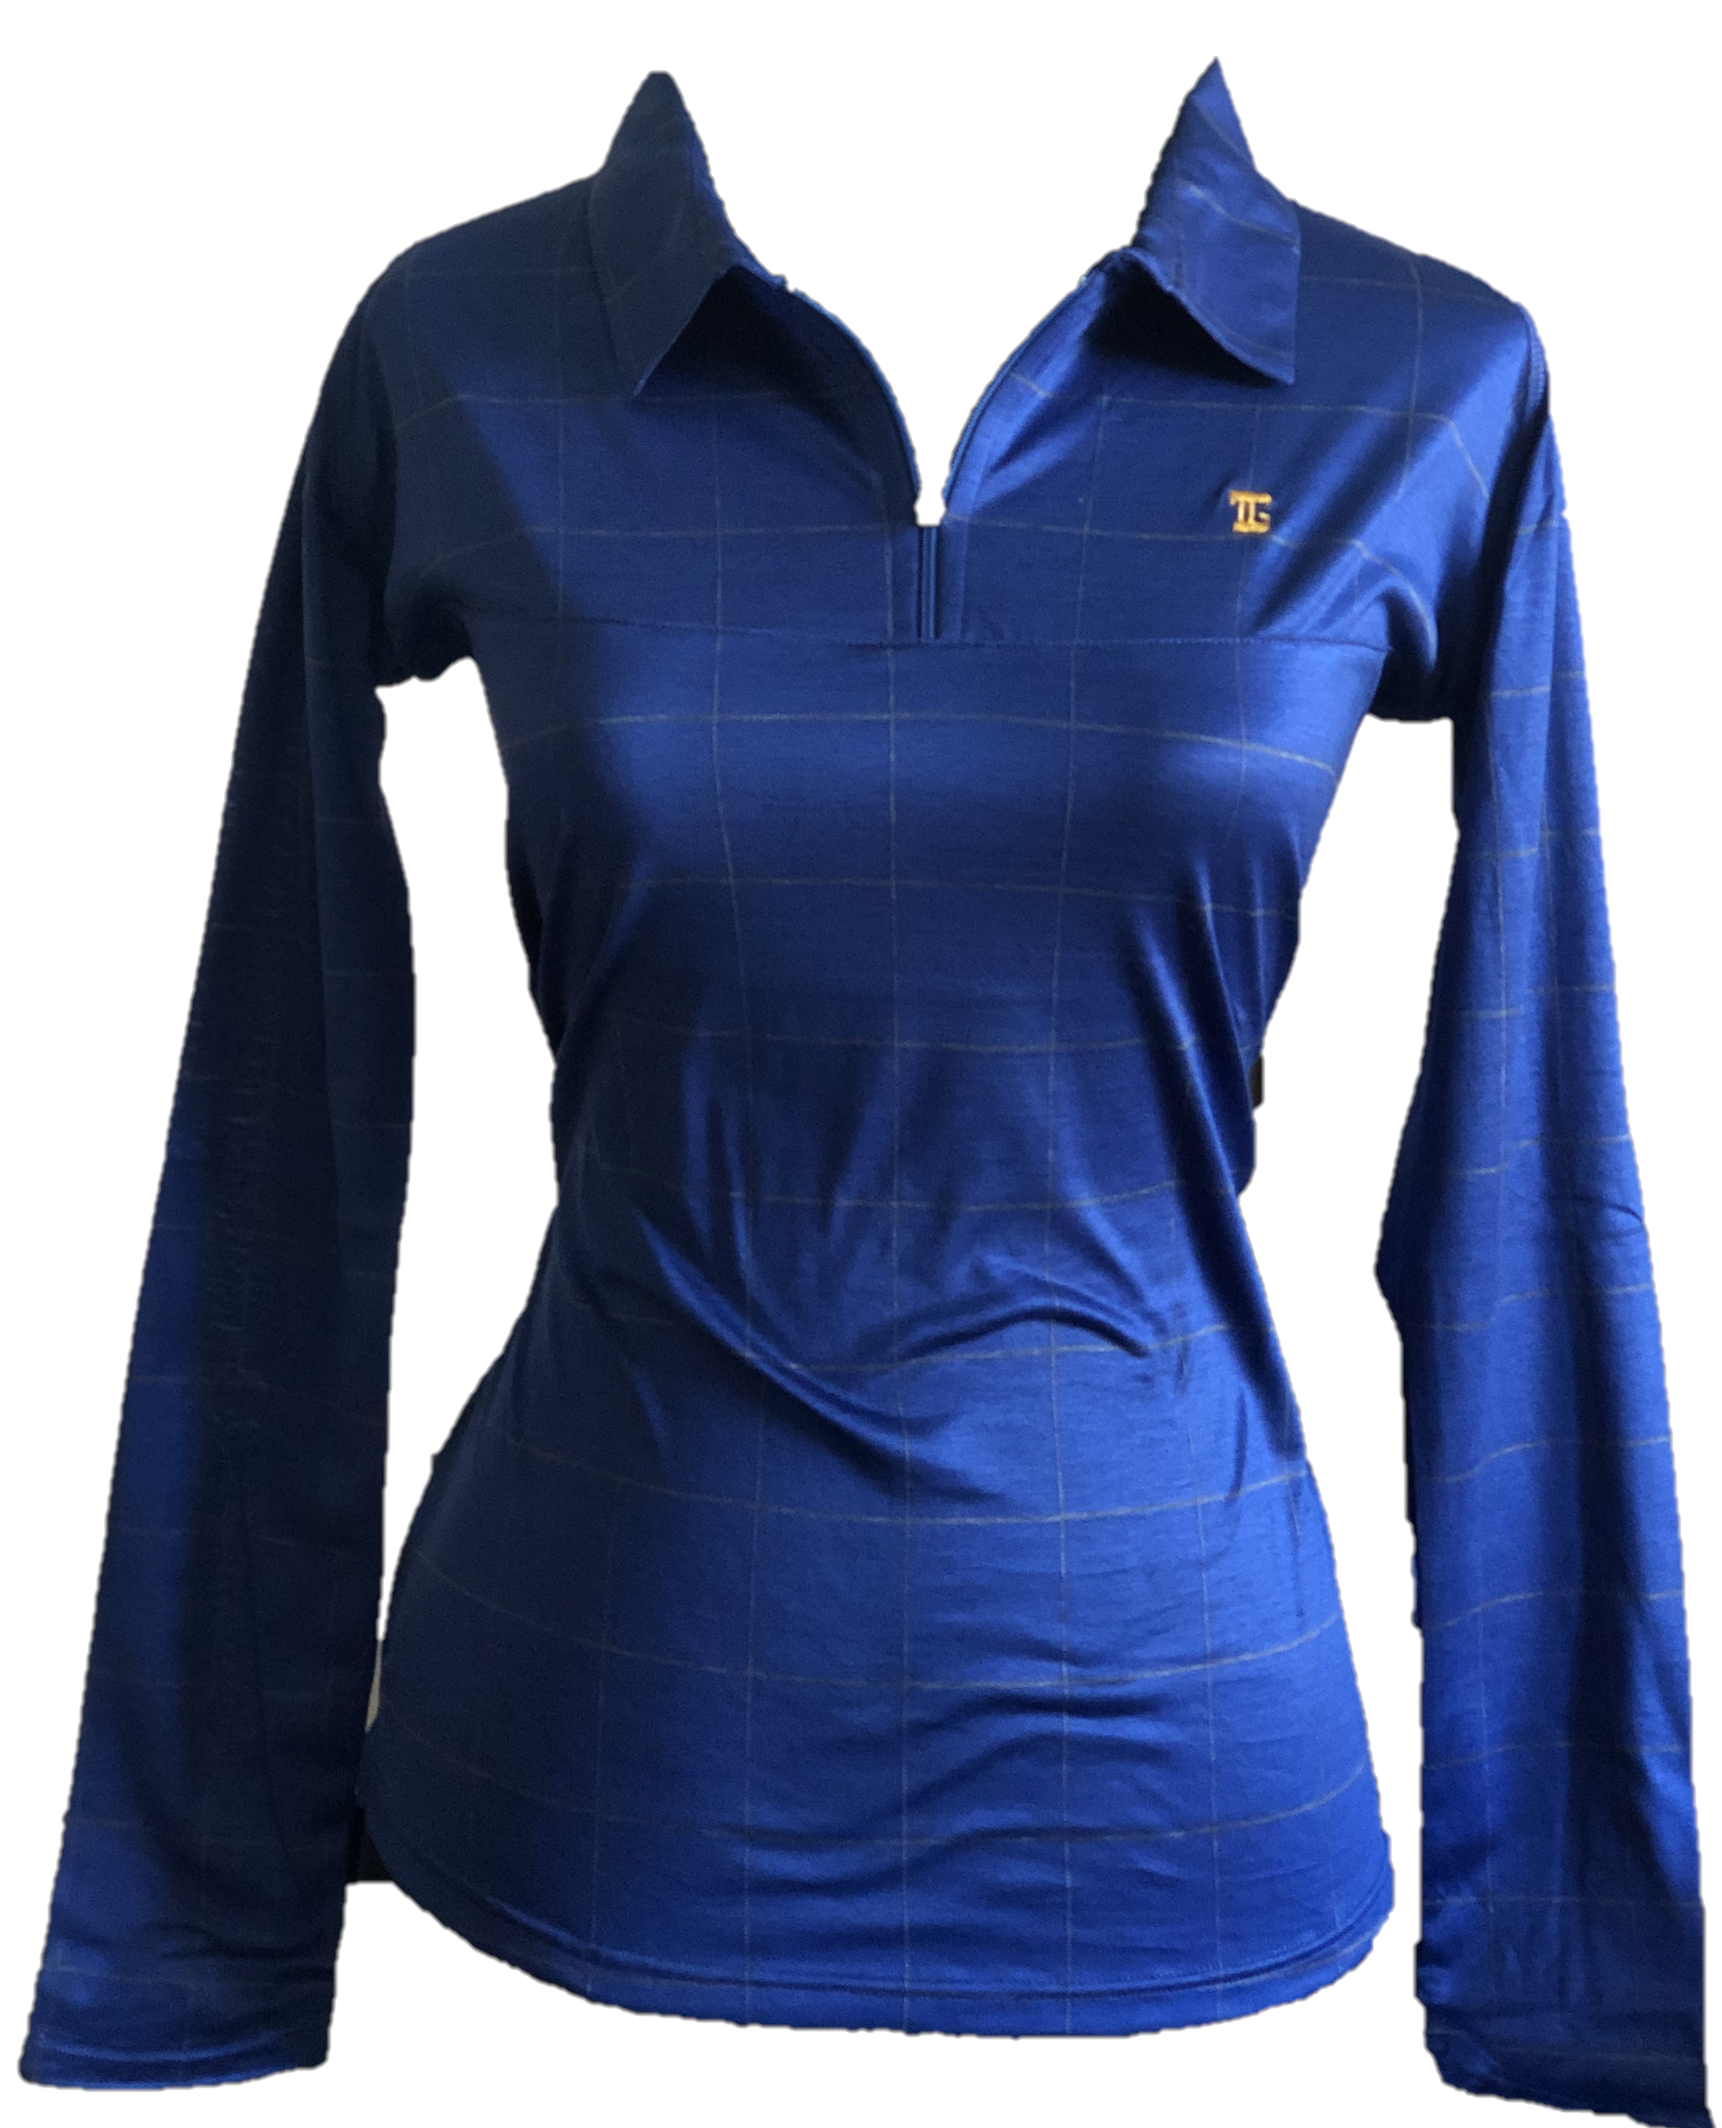 TG-LT-095B    Ladies Top Dark Blue  Long Sleeve With Yellow Fine Lined Horizontal And Vert Large Square Boundary Outlines & Zipper Neck